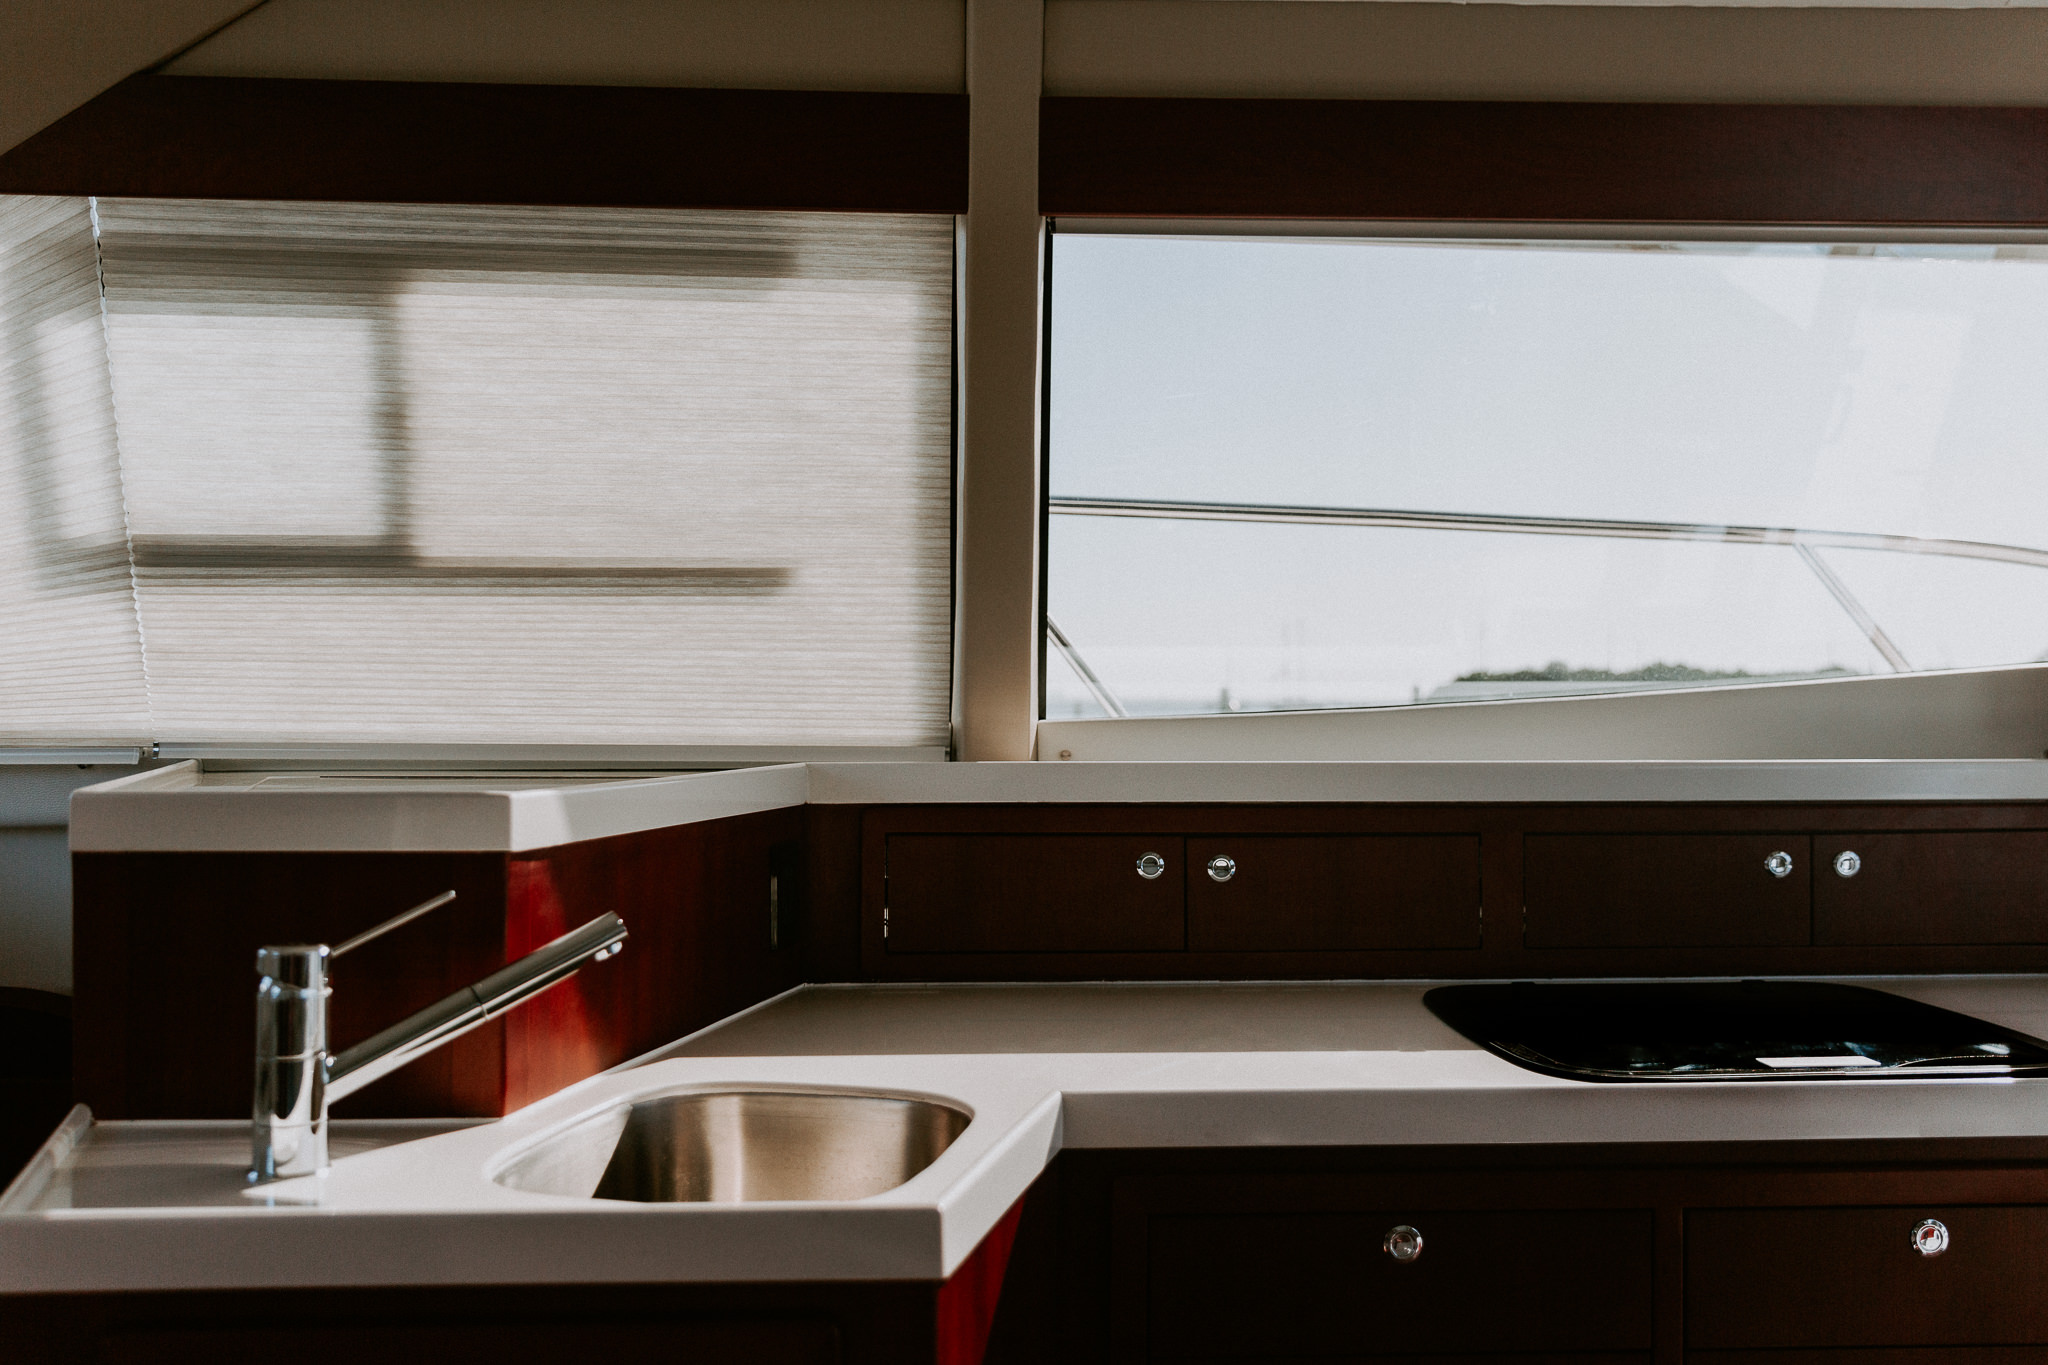 Galley with the boat blinds down